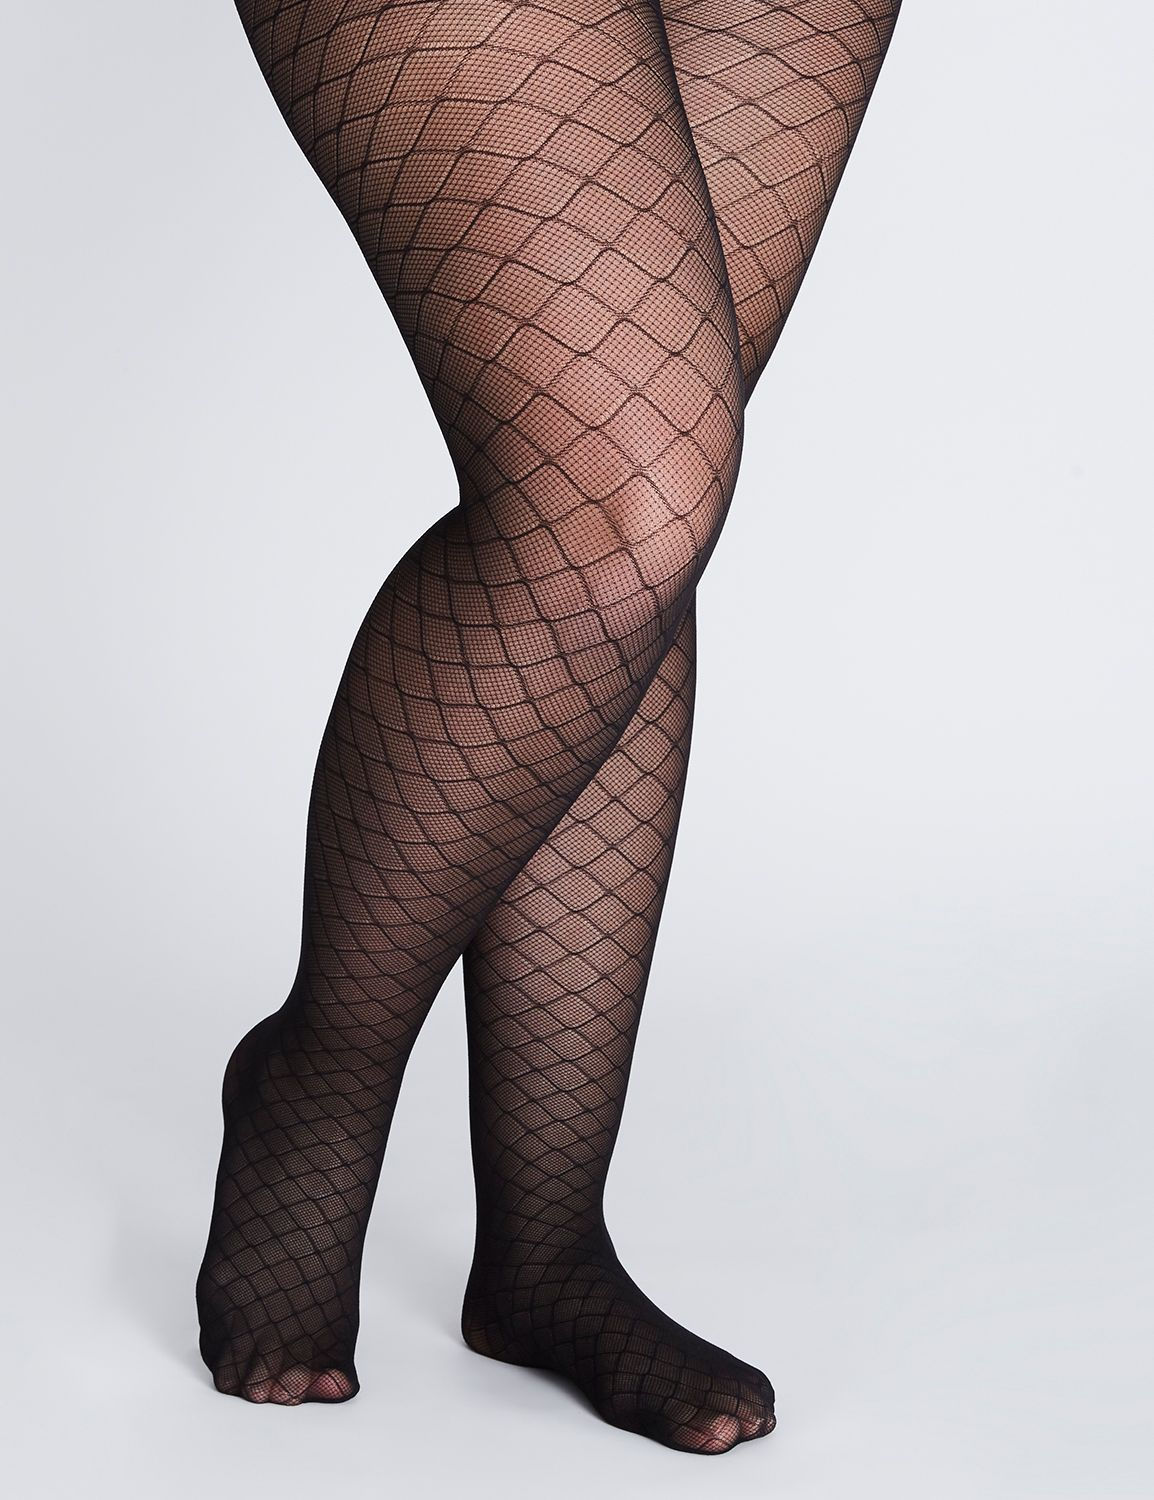 855b011739c5c Pretty Polly Womens Plus-Size Curves Suspender Tights Black X-Large PMARE7